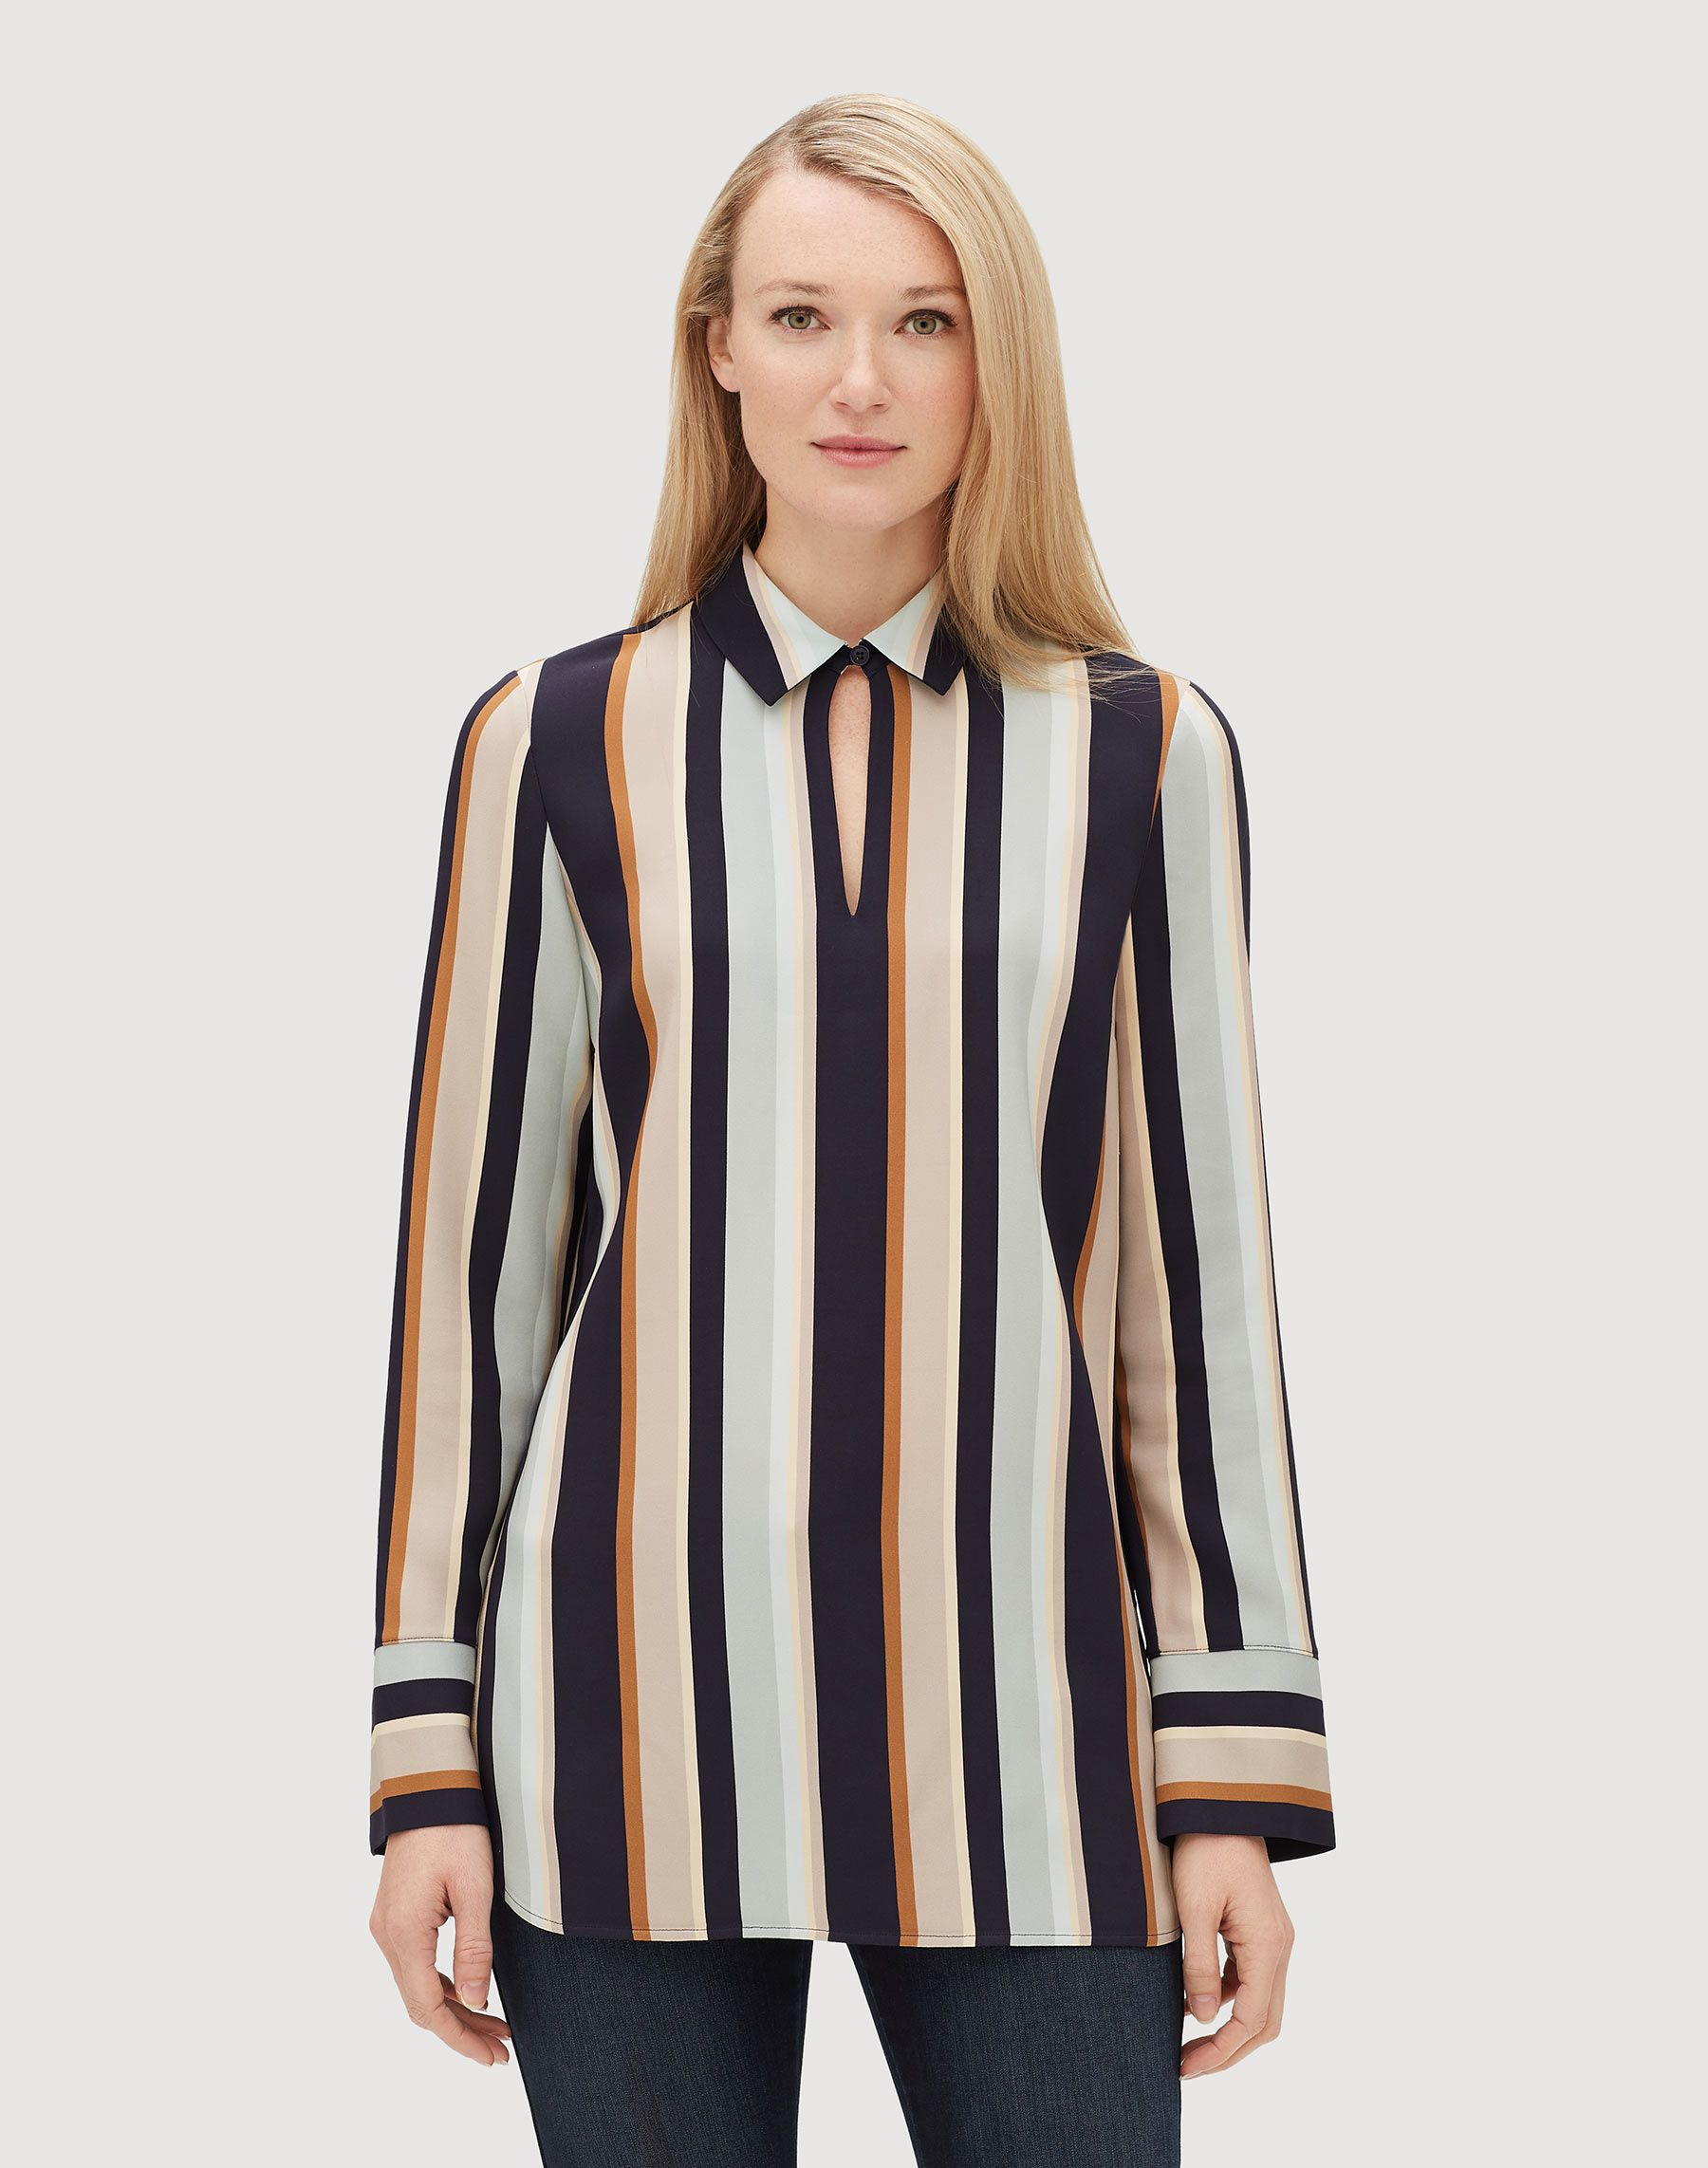 Stripe Shirts - Blouses & Shirts - Shop by Category | Lafayette 148